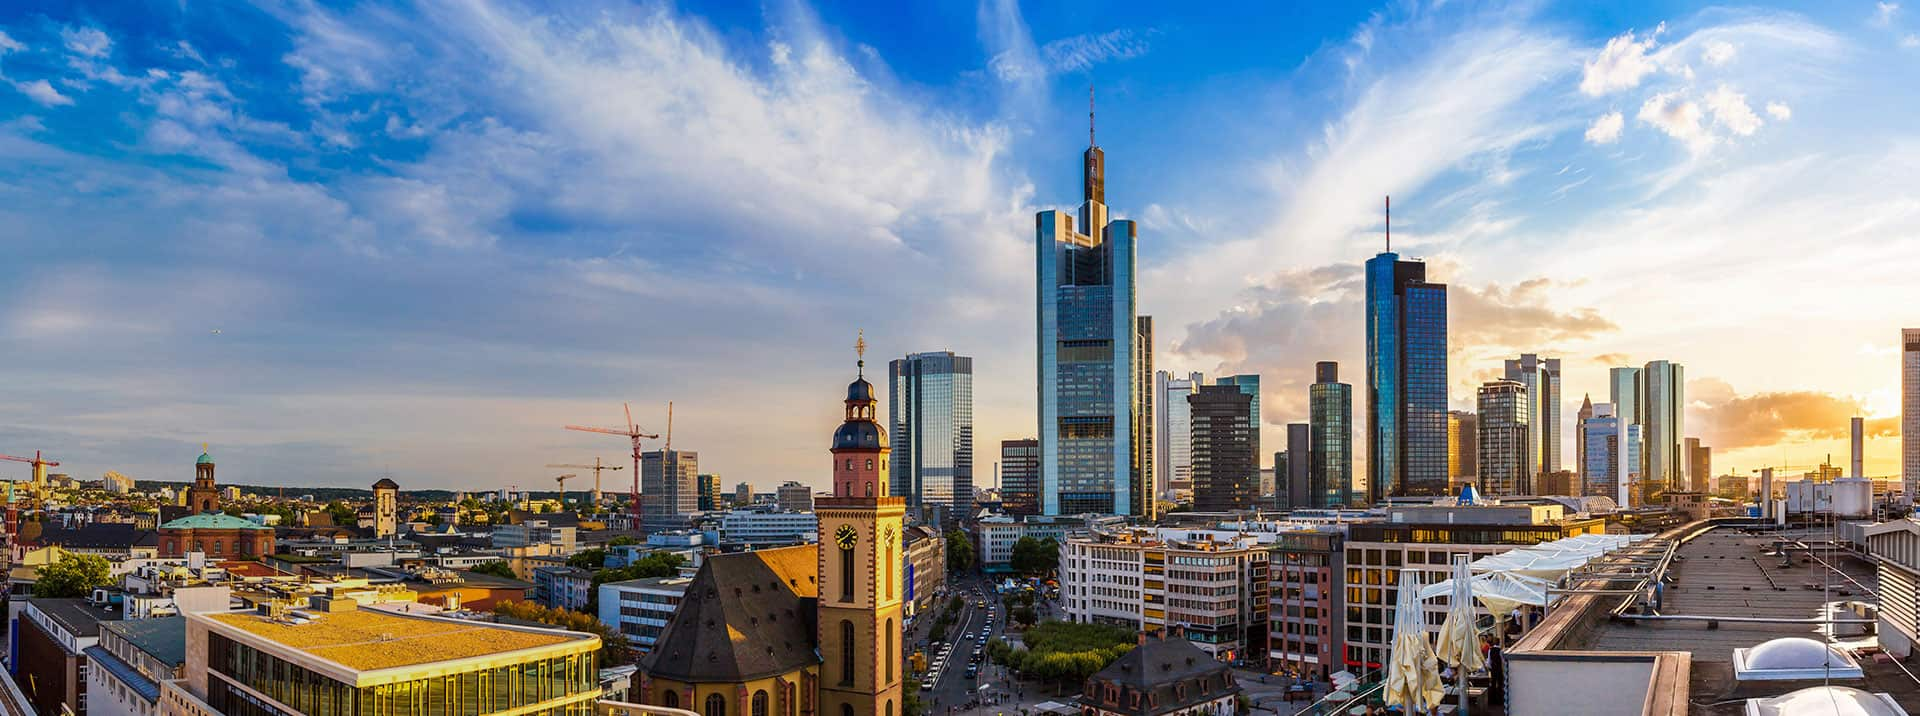 Featured-Image_Frankfurt_1920x716